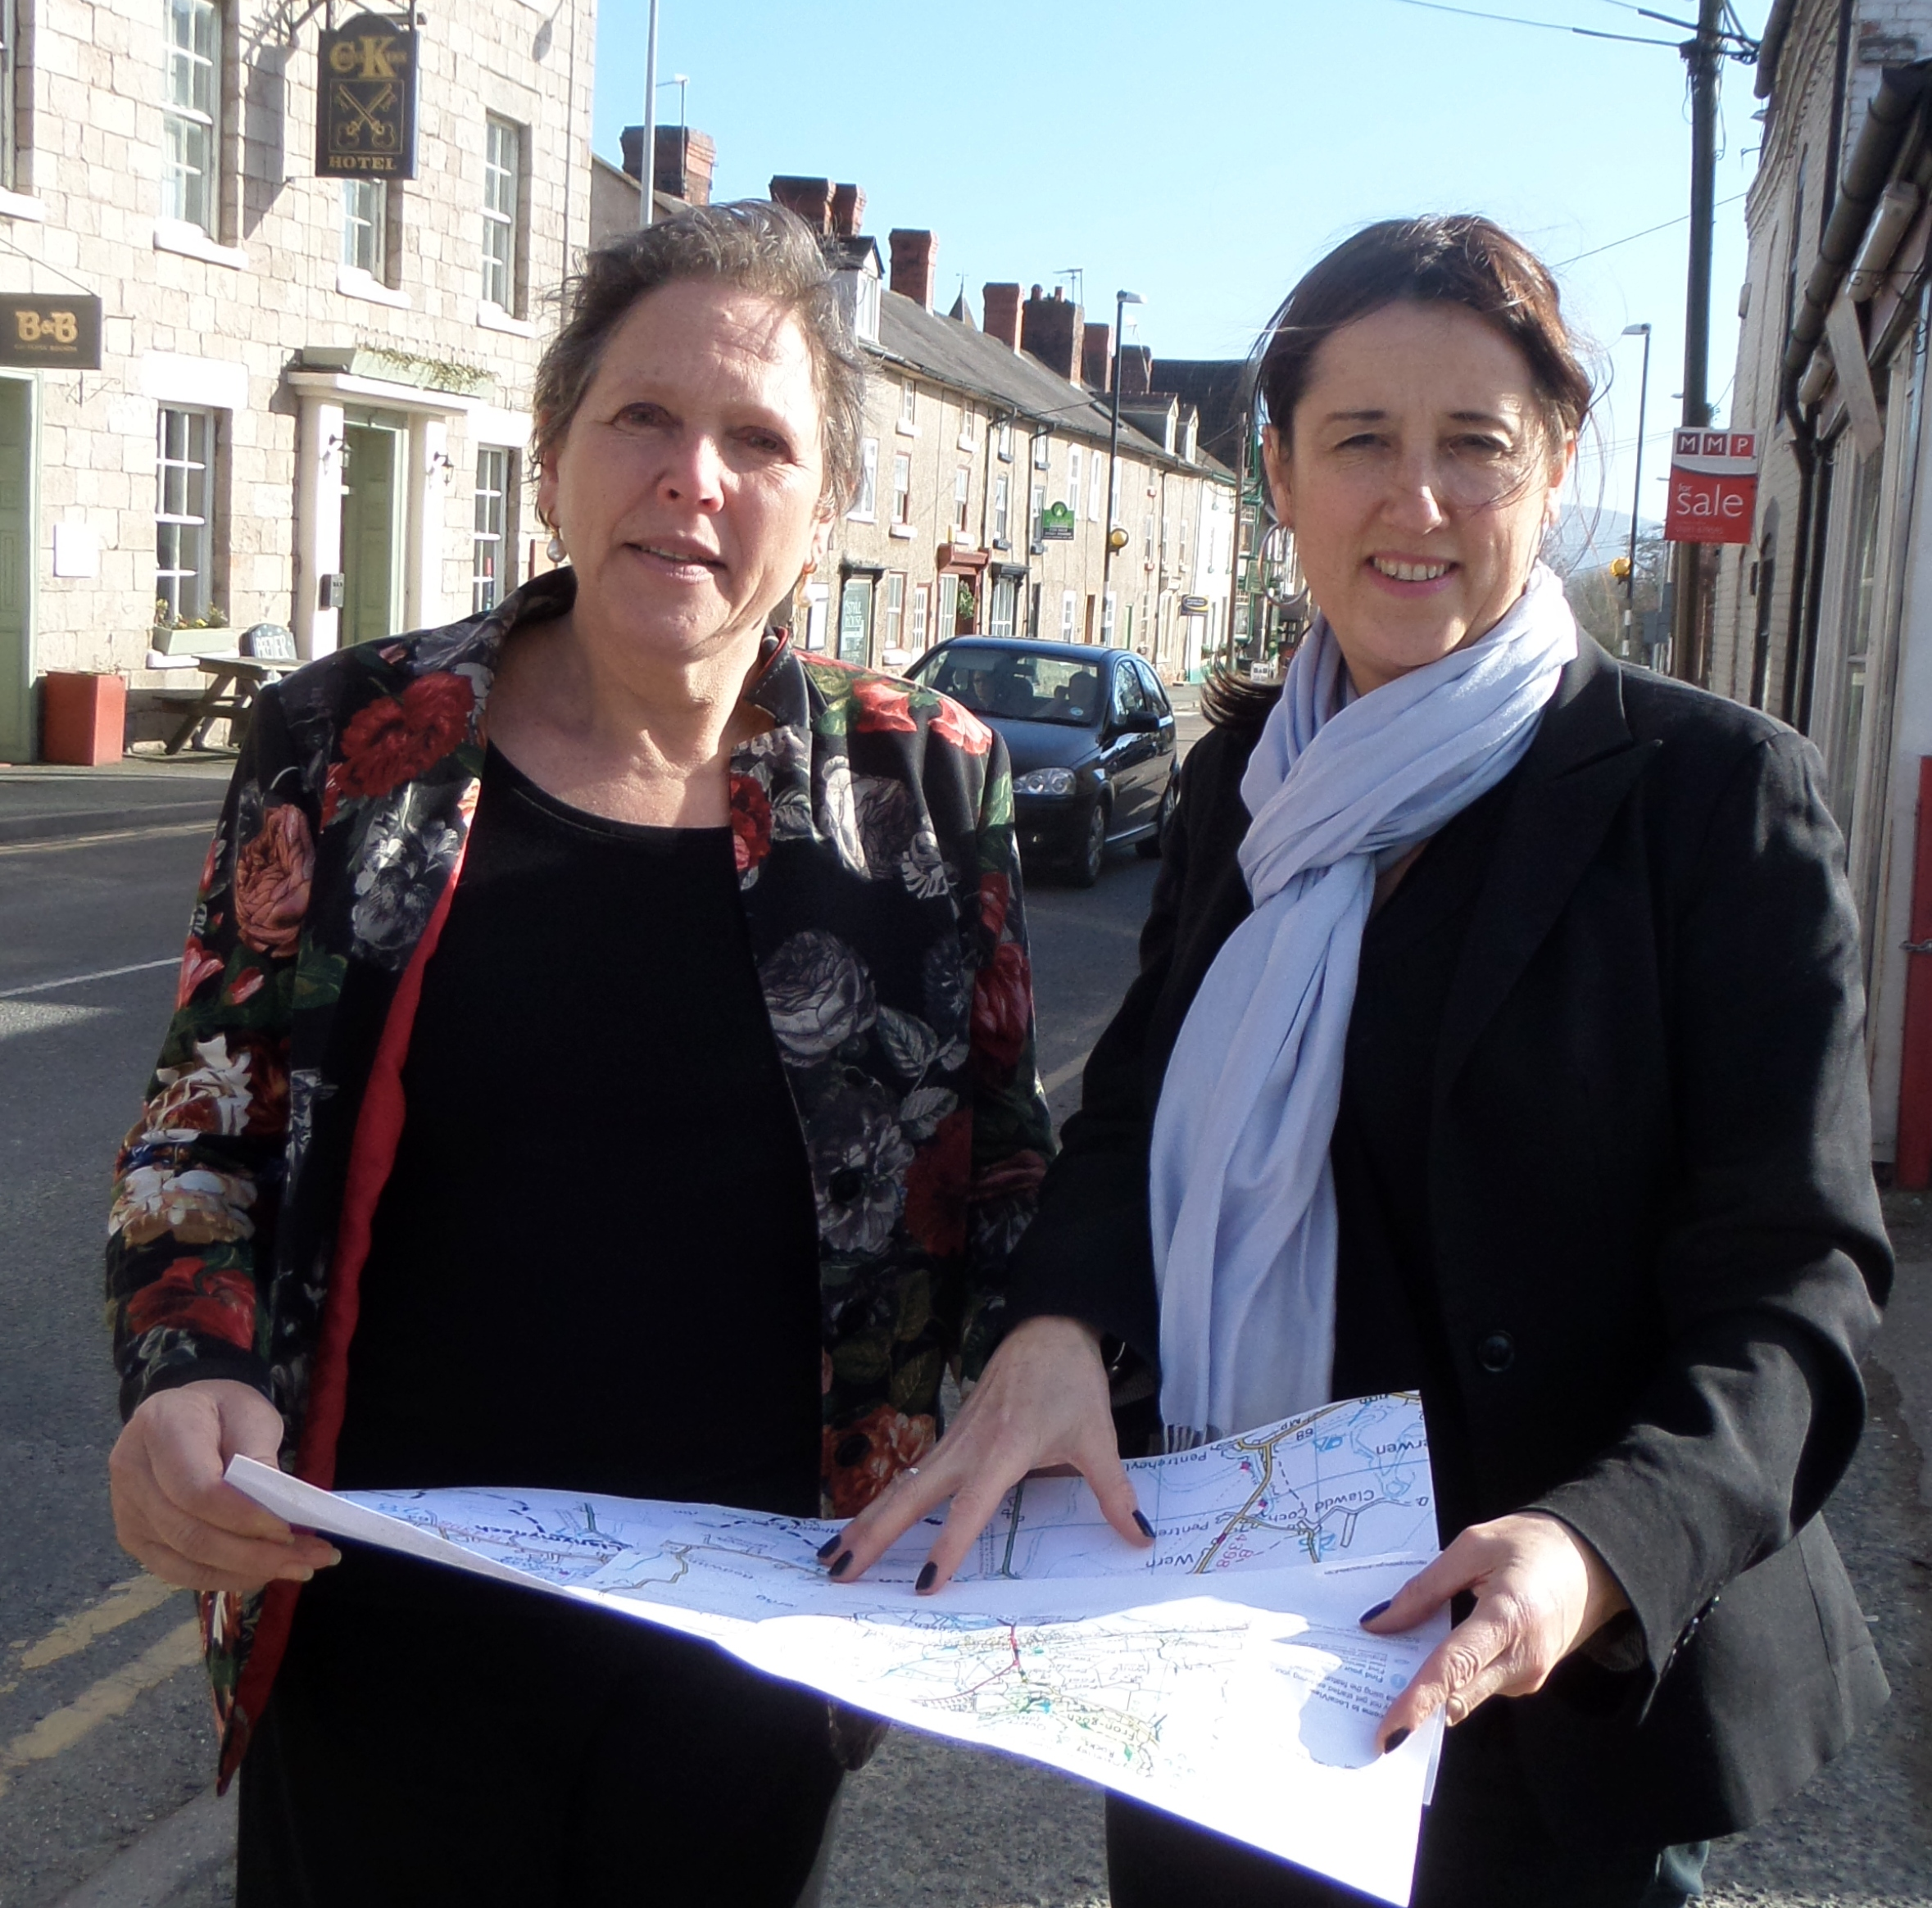 Baroness_Kramer_and_Jane_Dodds_ByPass_Press_Release.jpg